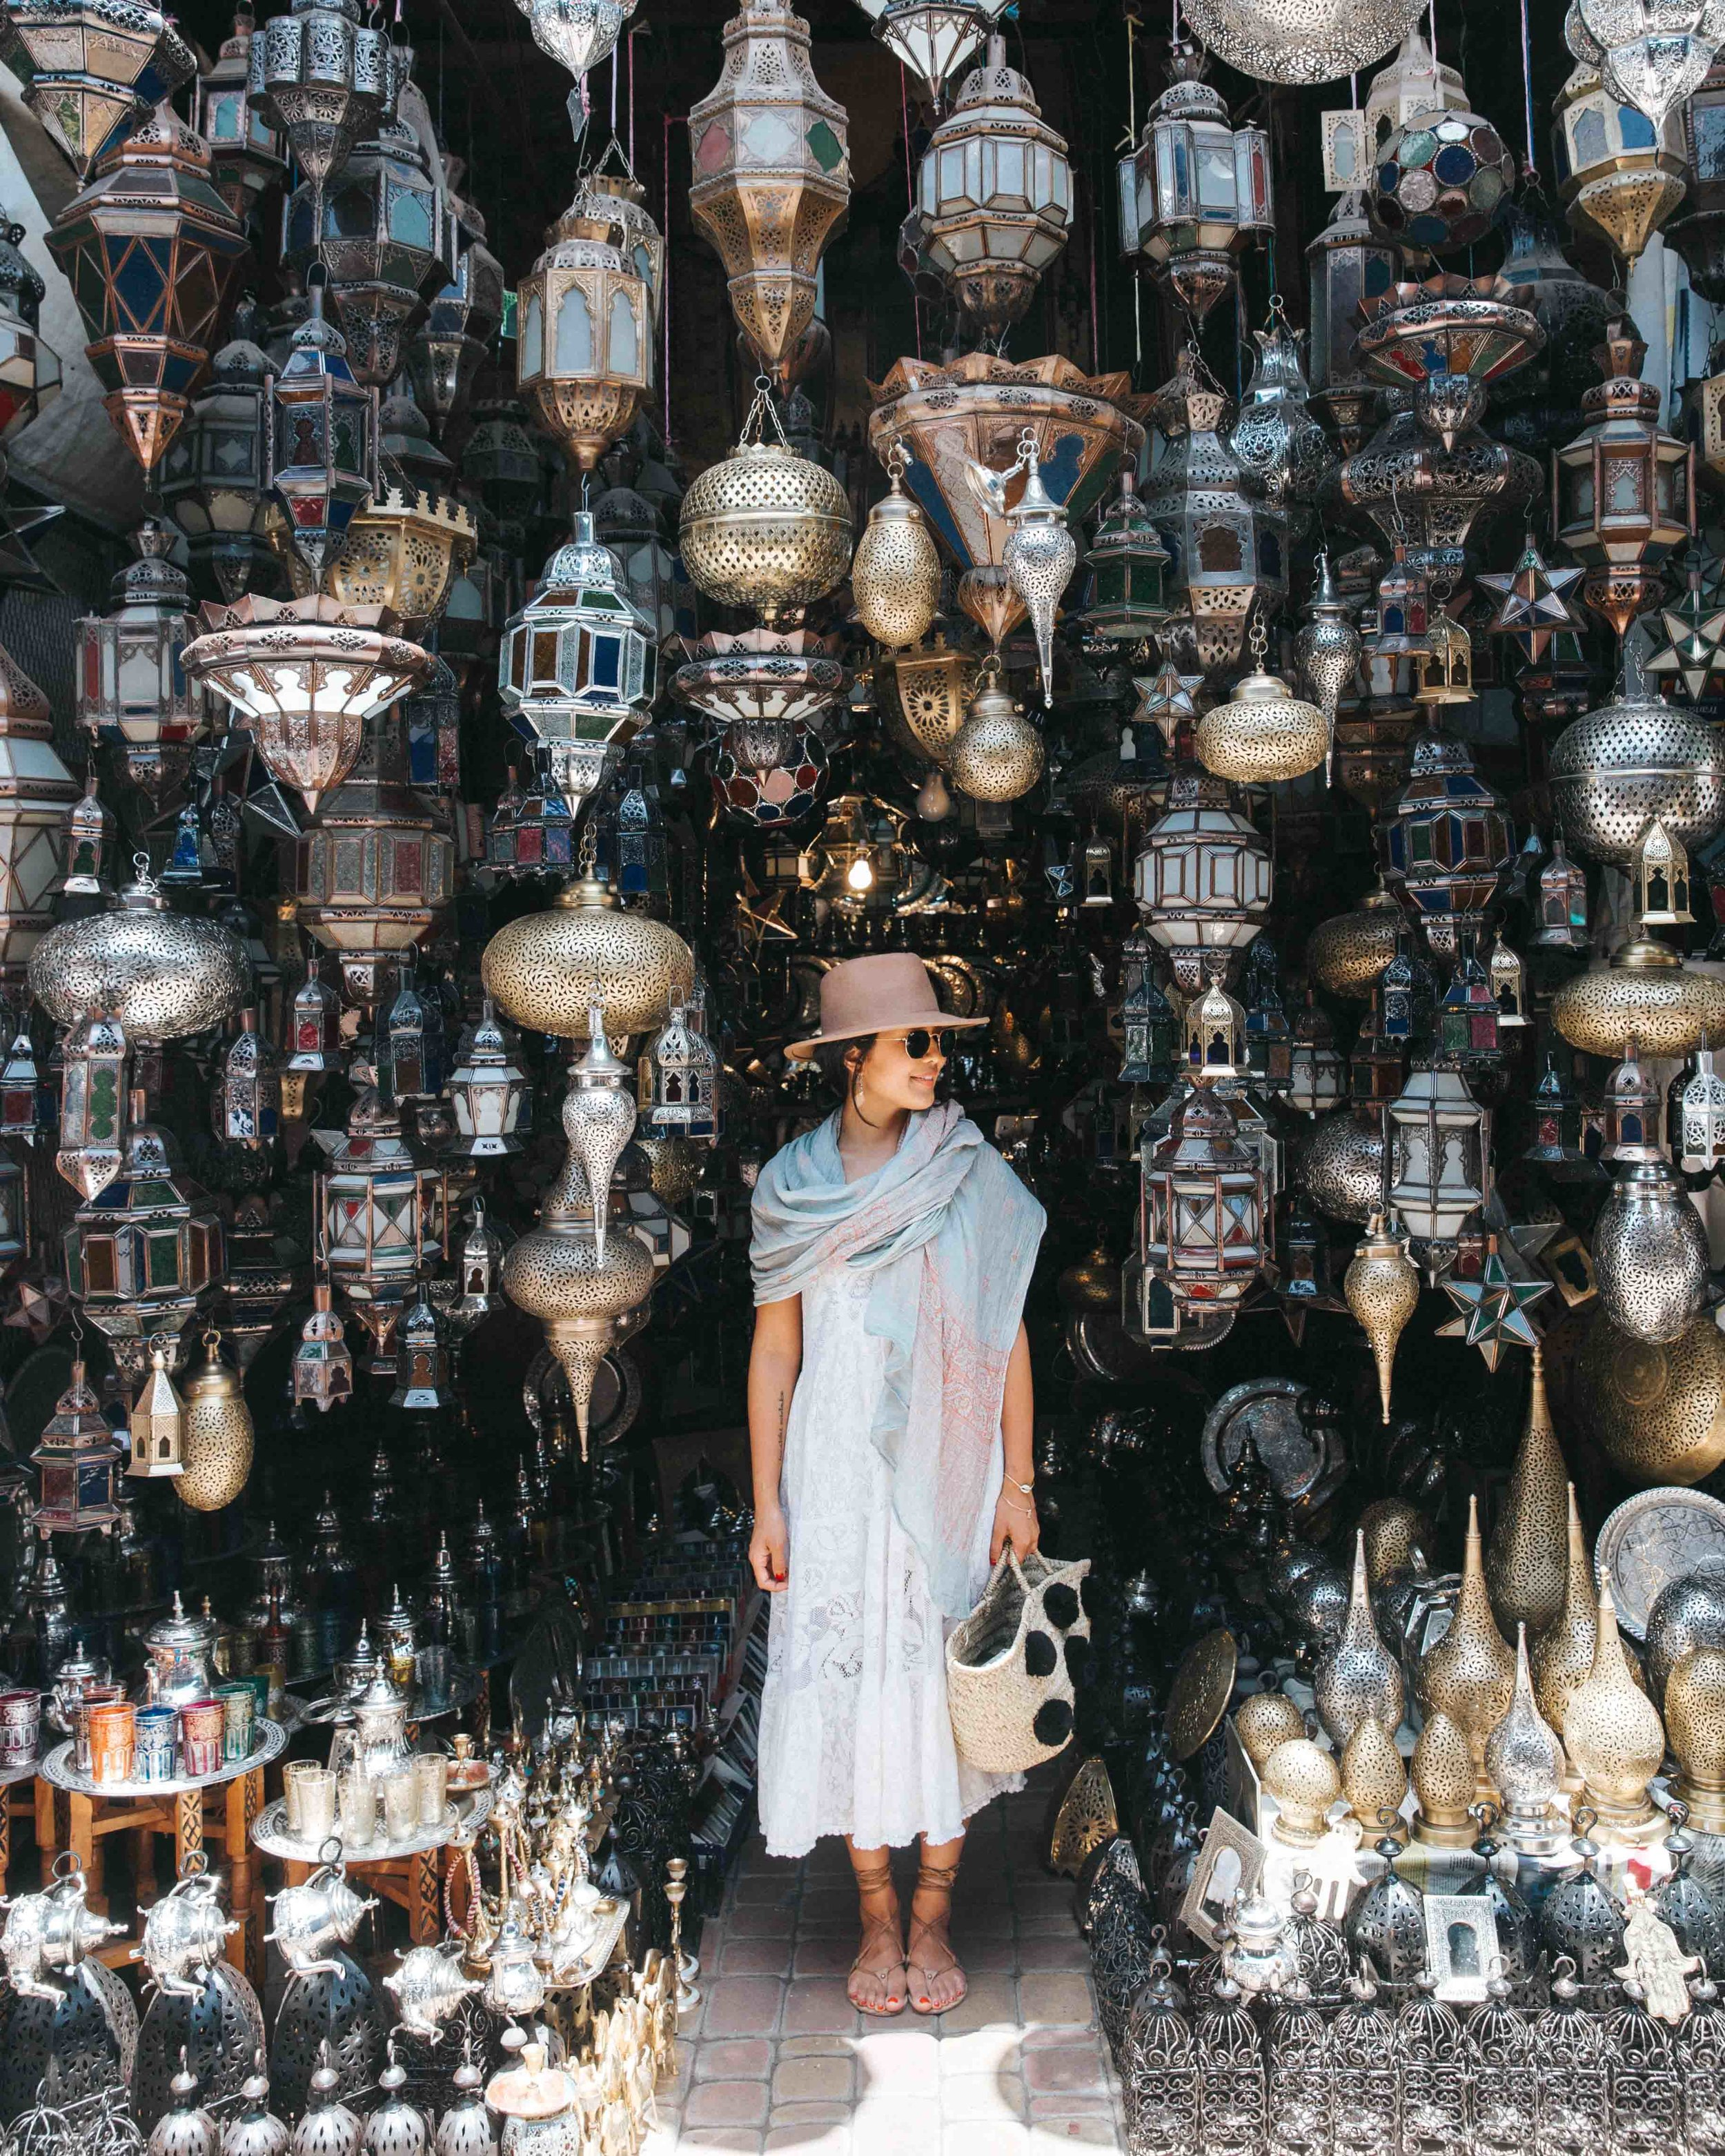 Things to do in Marrakech, Morocco: Shopping in the souks